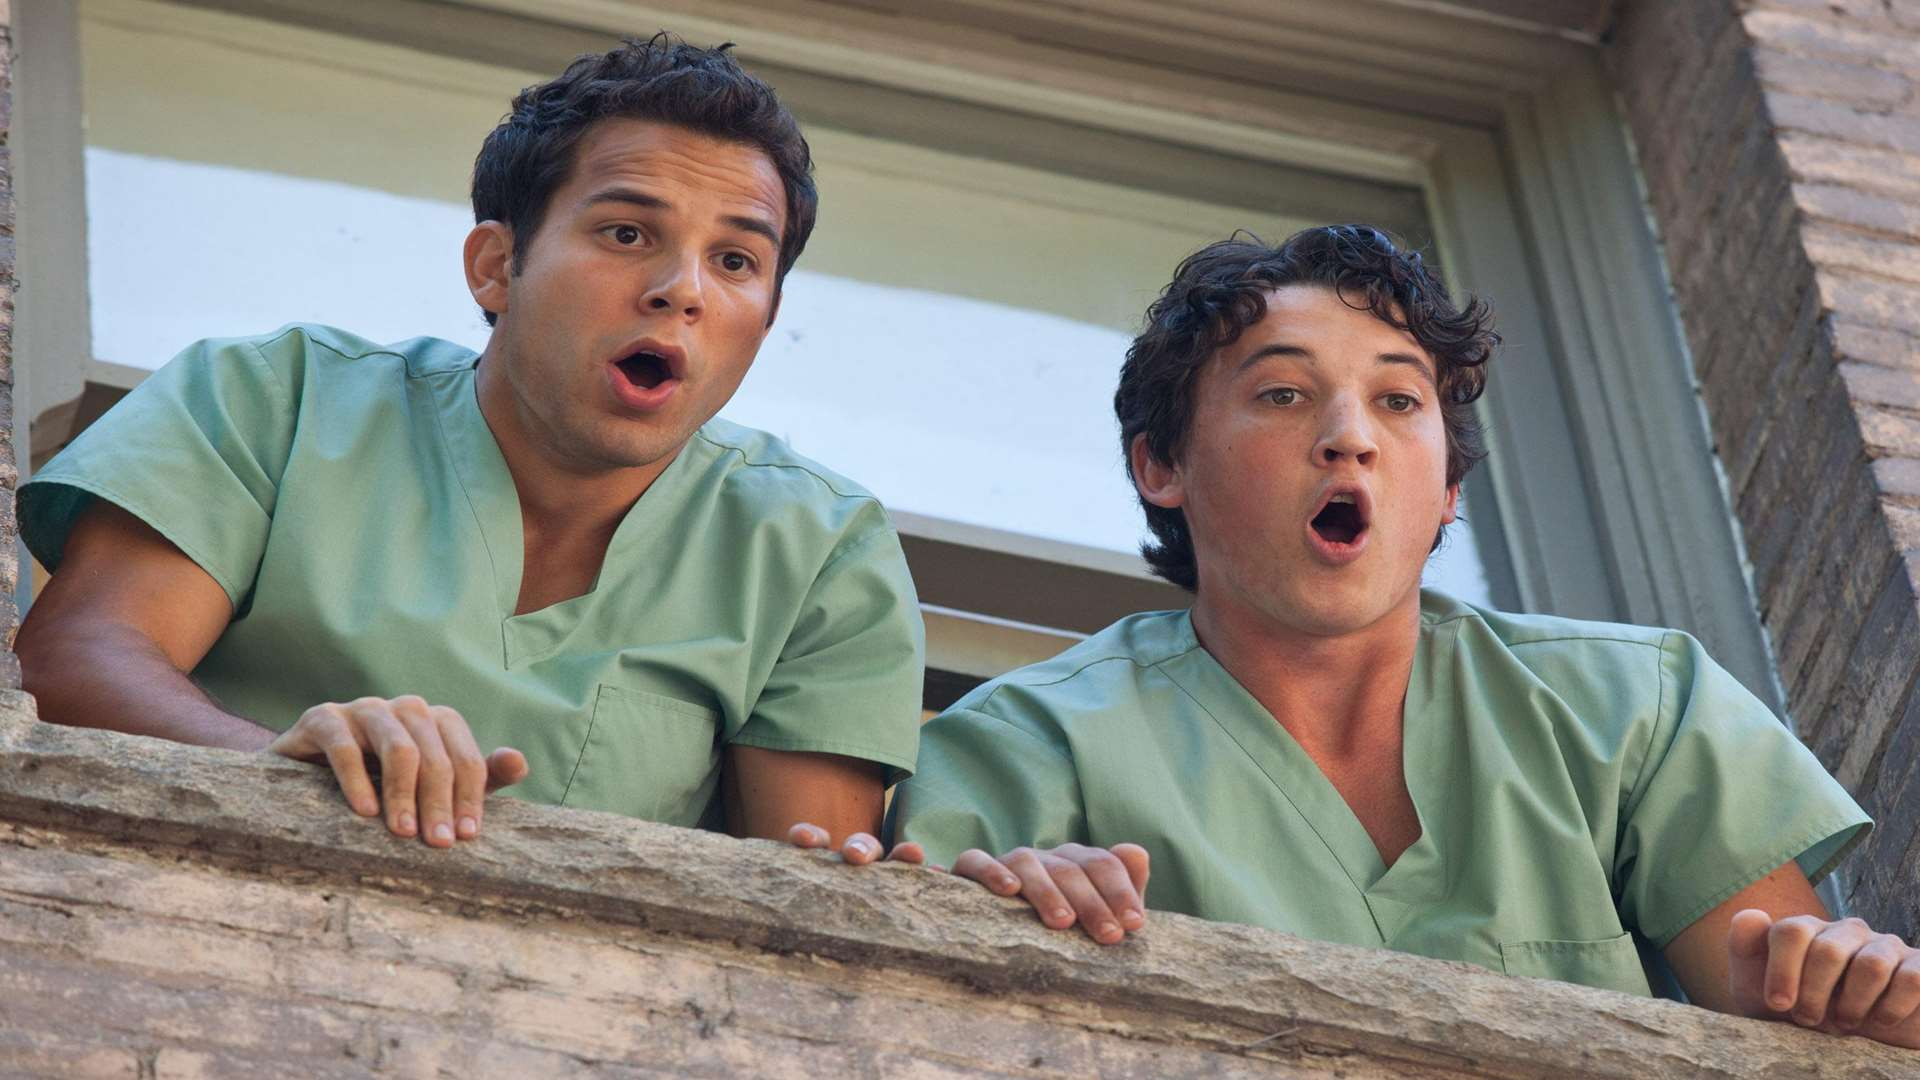 Miles Teller and Skylar Astin in 21 & Over.Credit: PA Photo/Entertainment One.